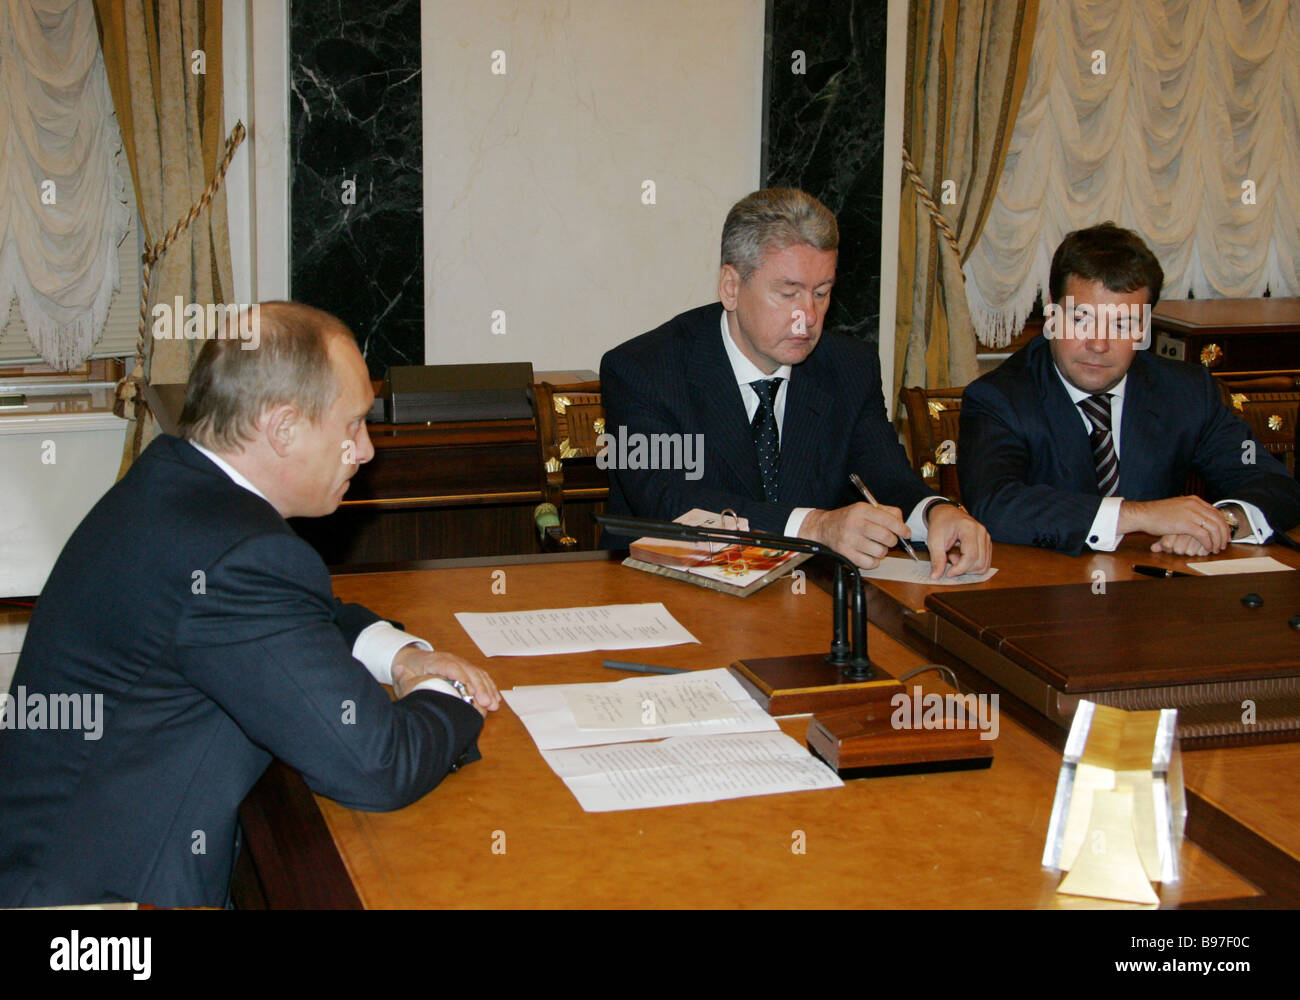 President Vladimir Putin left and his new appointments head of the Kremlin administration Sergei Sobyanin center - Stock Image